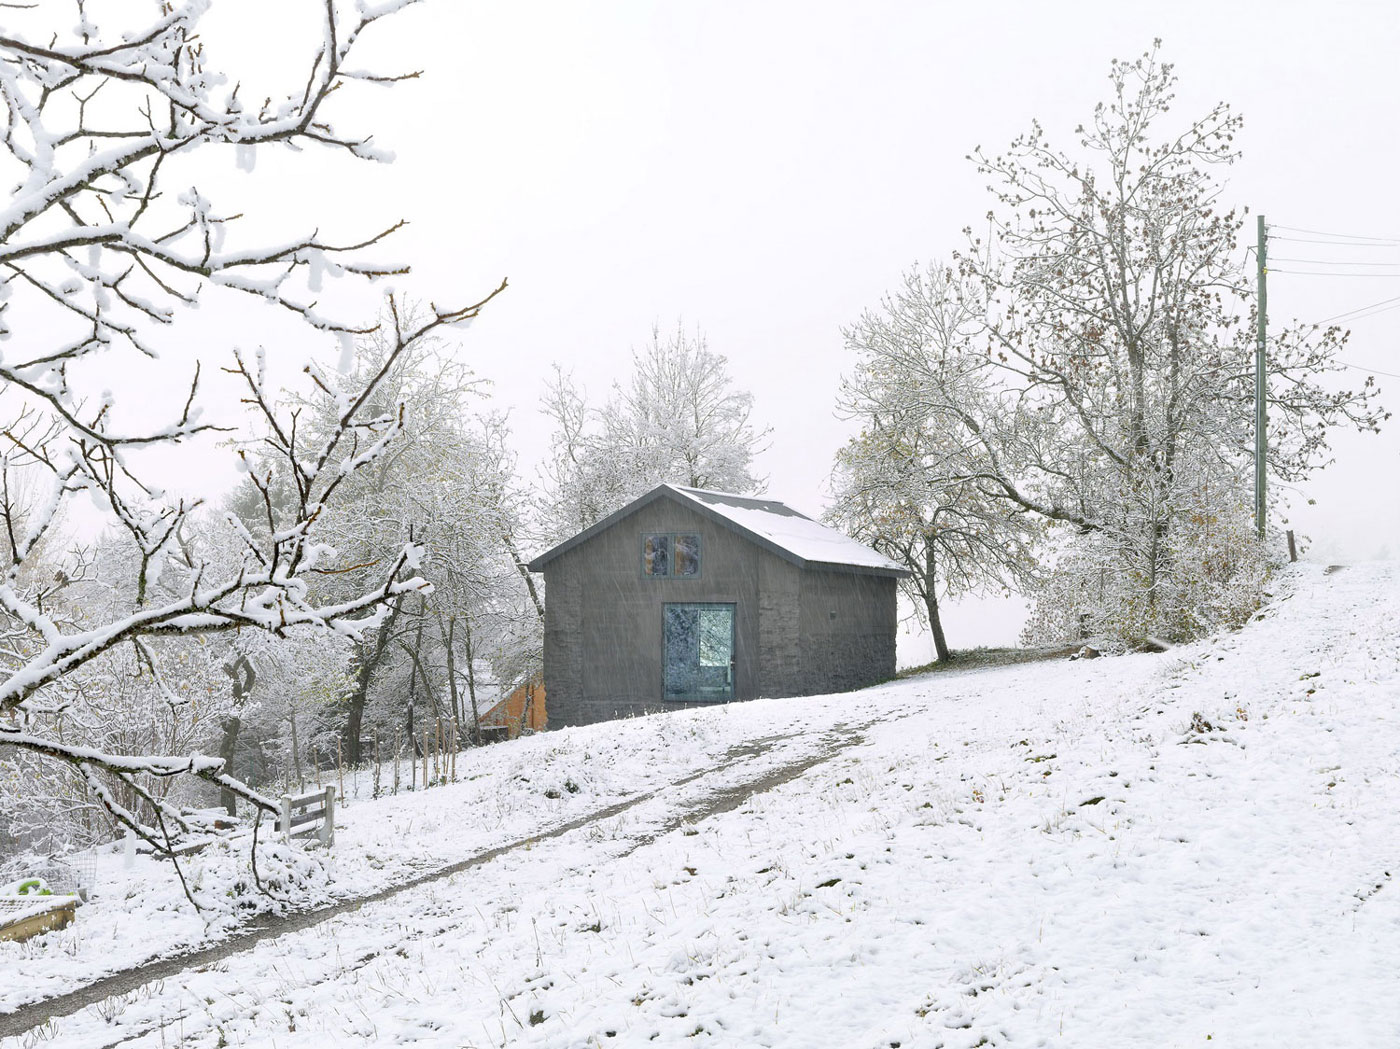 Winter Snow, Holiday Home Renovation in Ayent, Switzerland